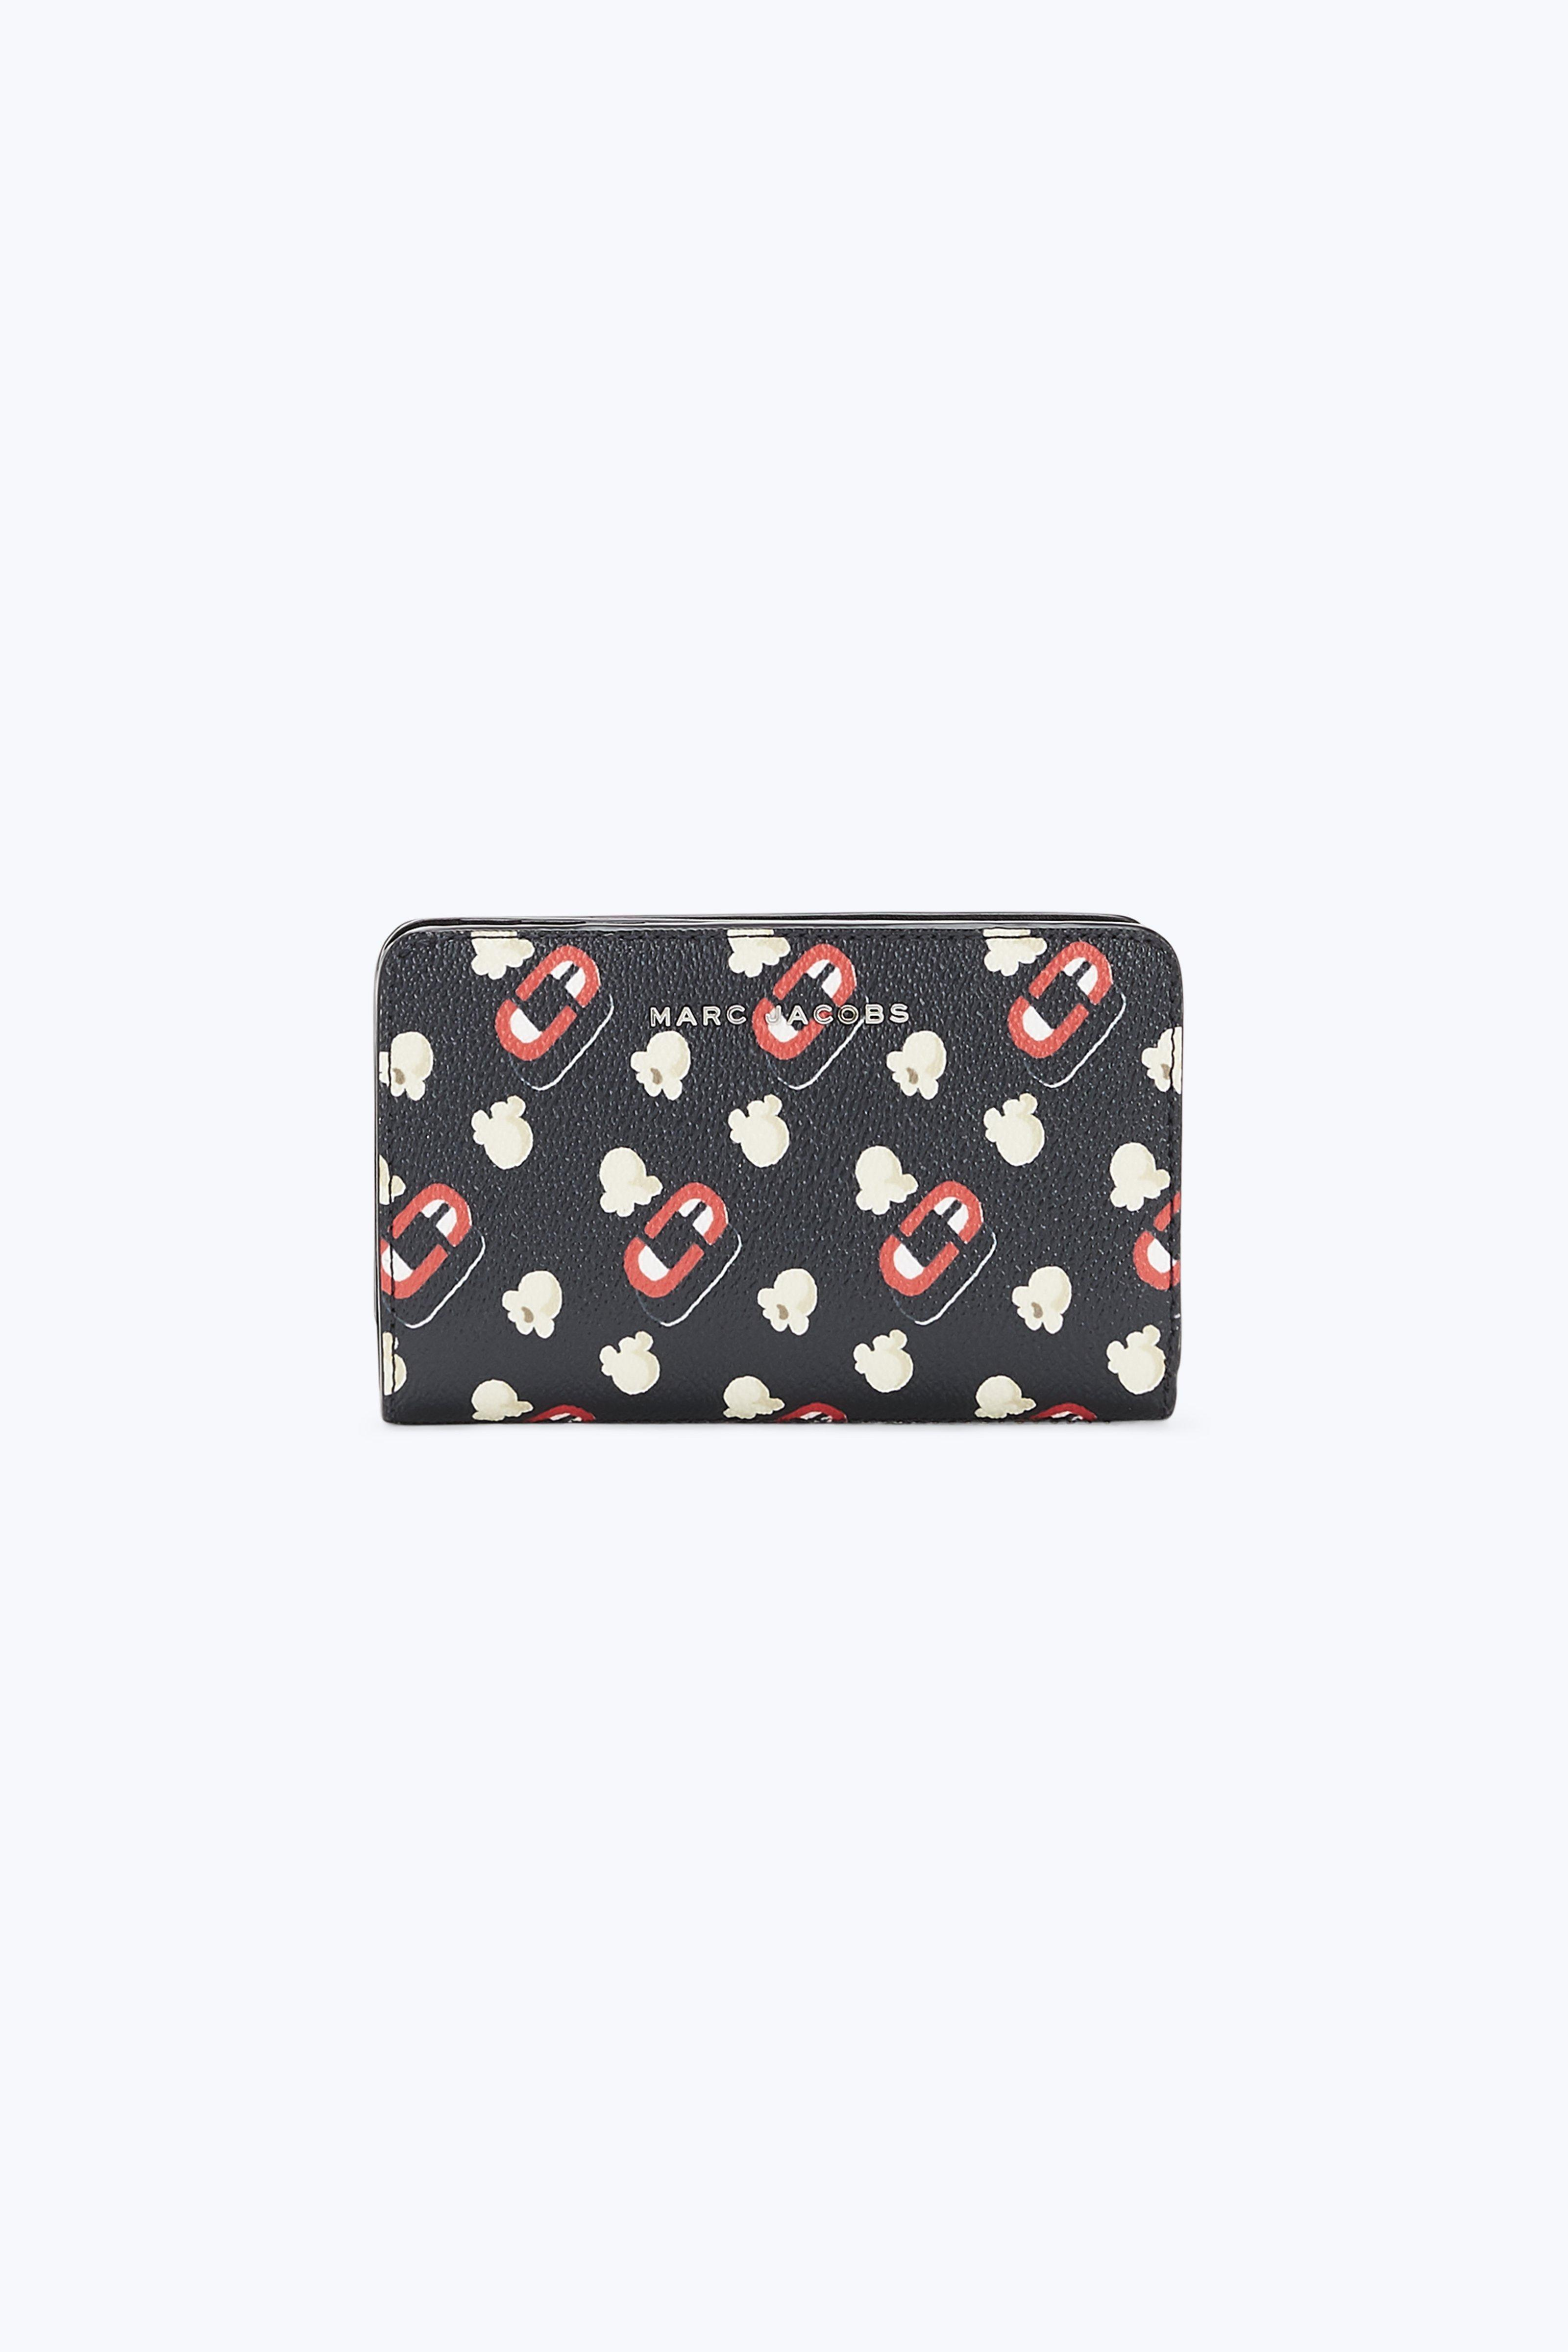 Marc Jacobs Popcorn Scream Compact Wallet In Black Multi